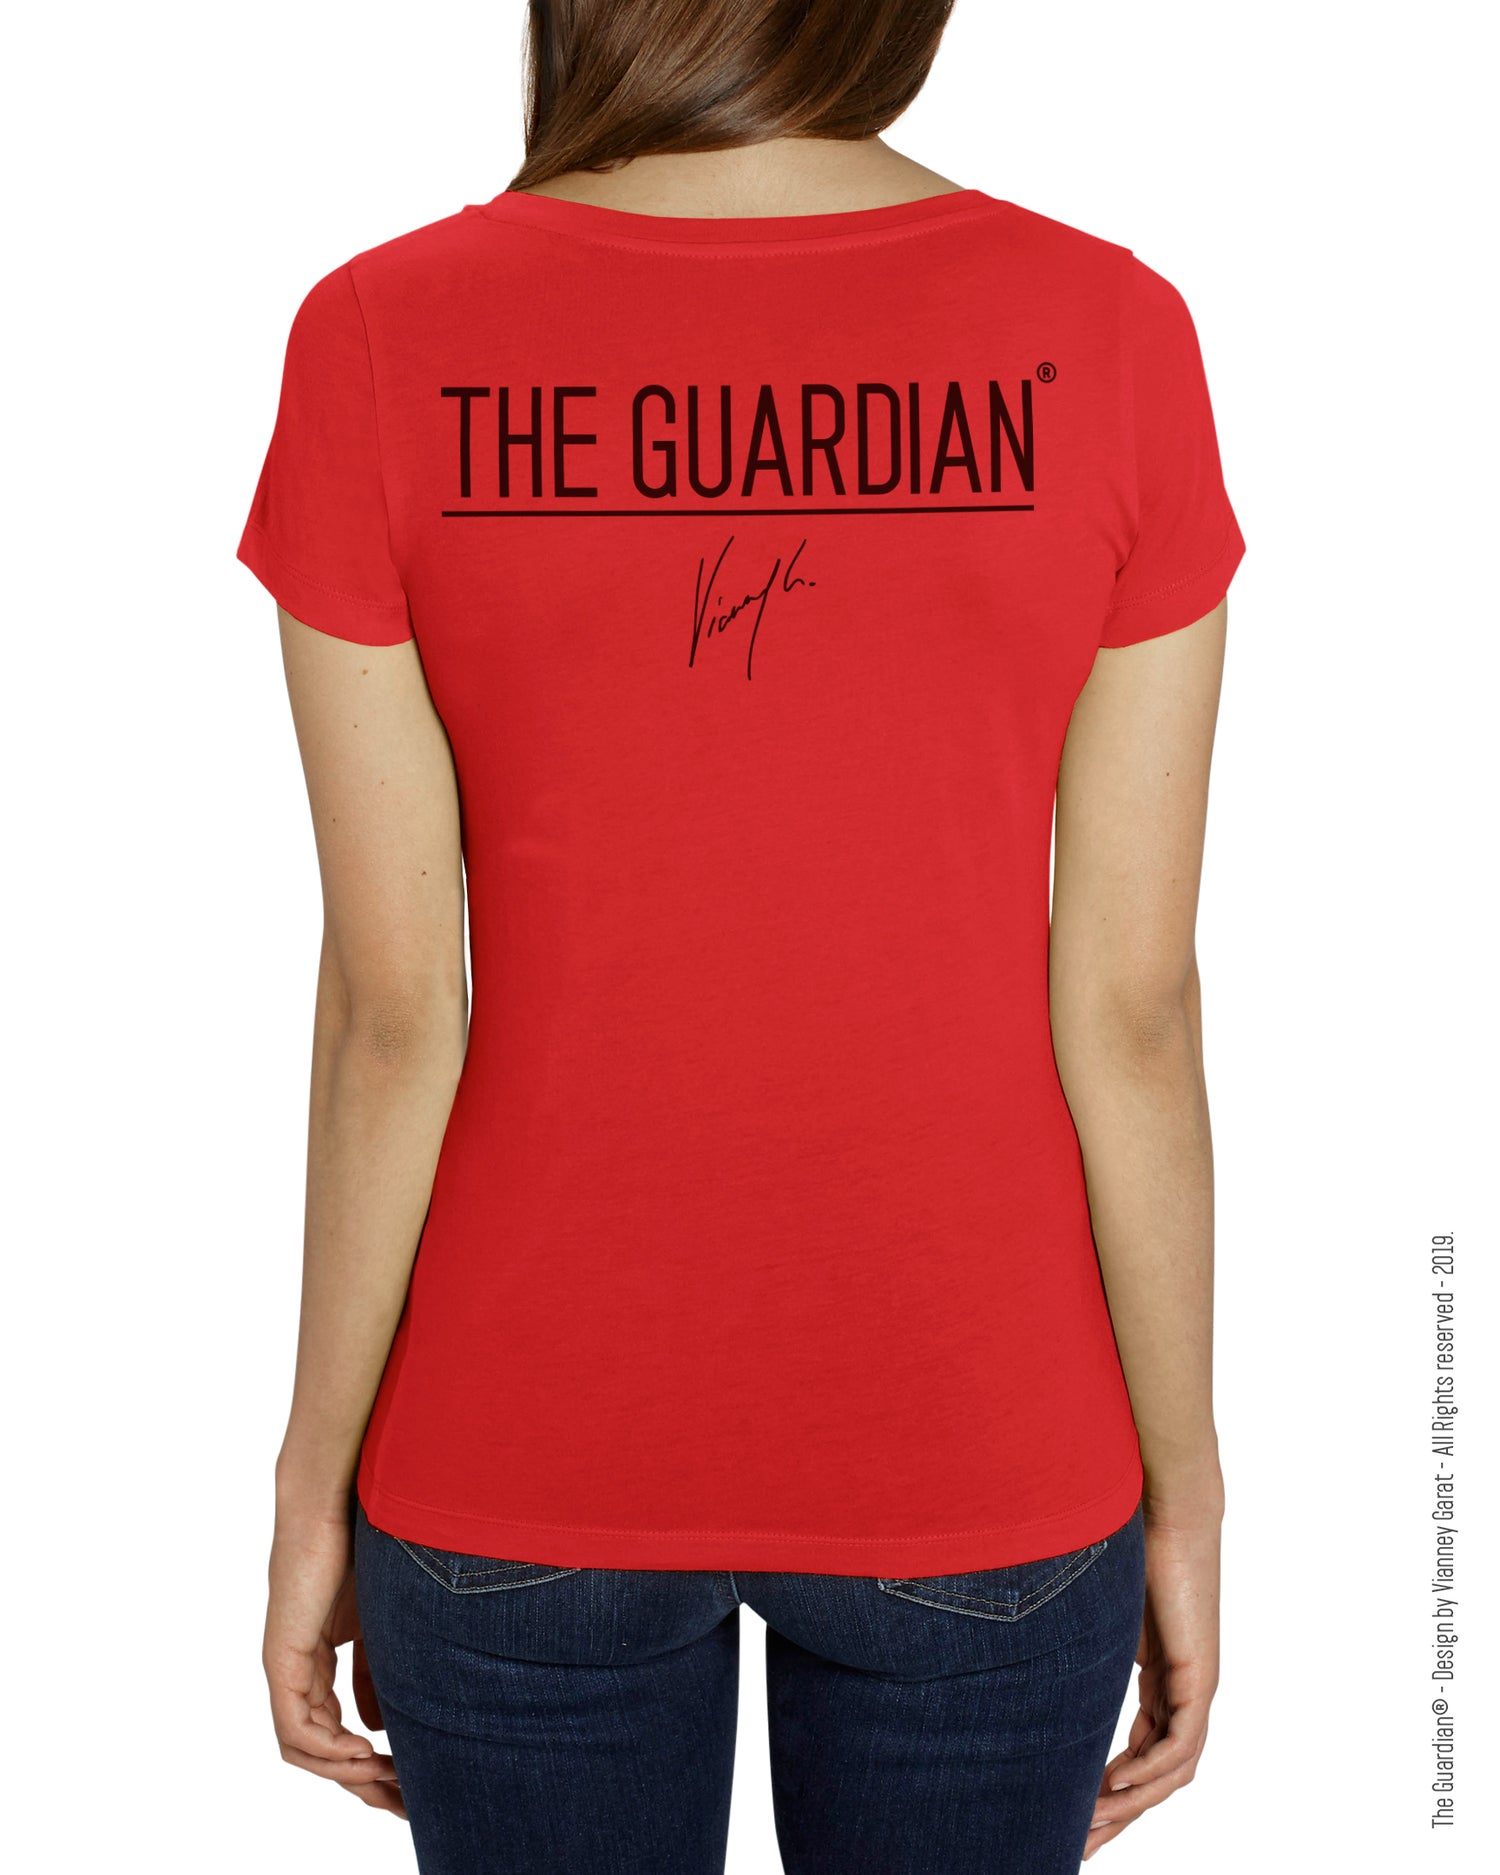 Image of T-SHIRT FEMME- THE GUARDIAN® - FIRE EDITION - Limited Edition